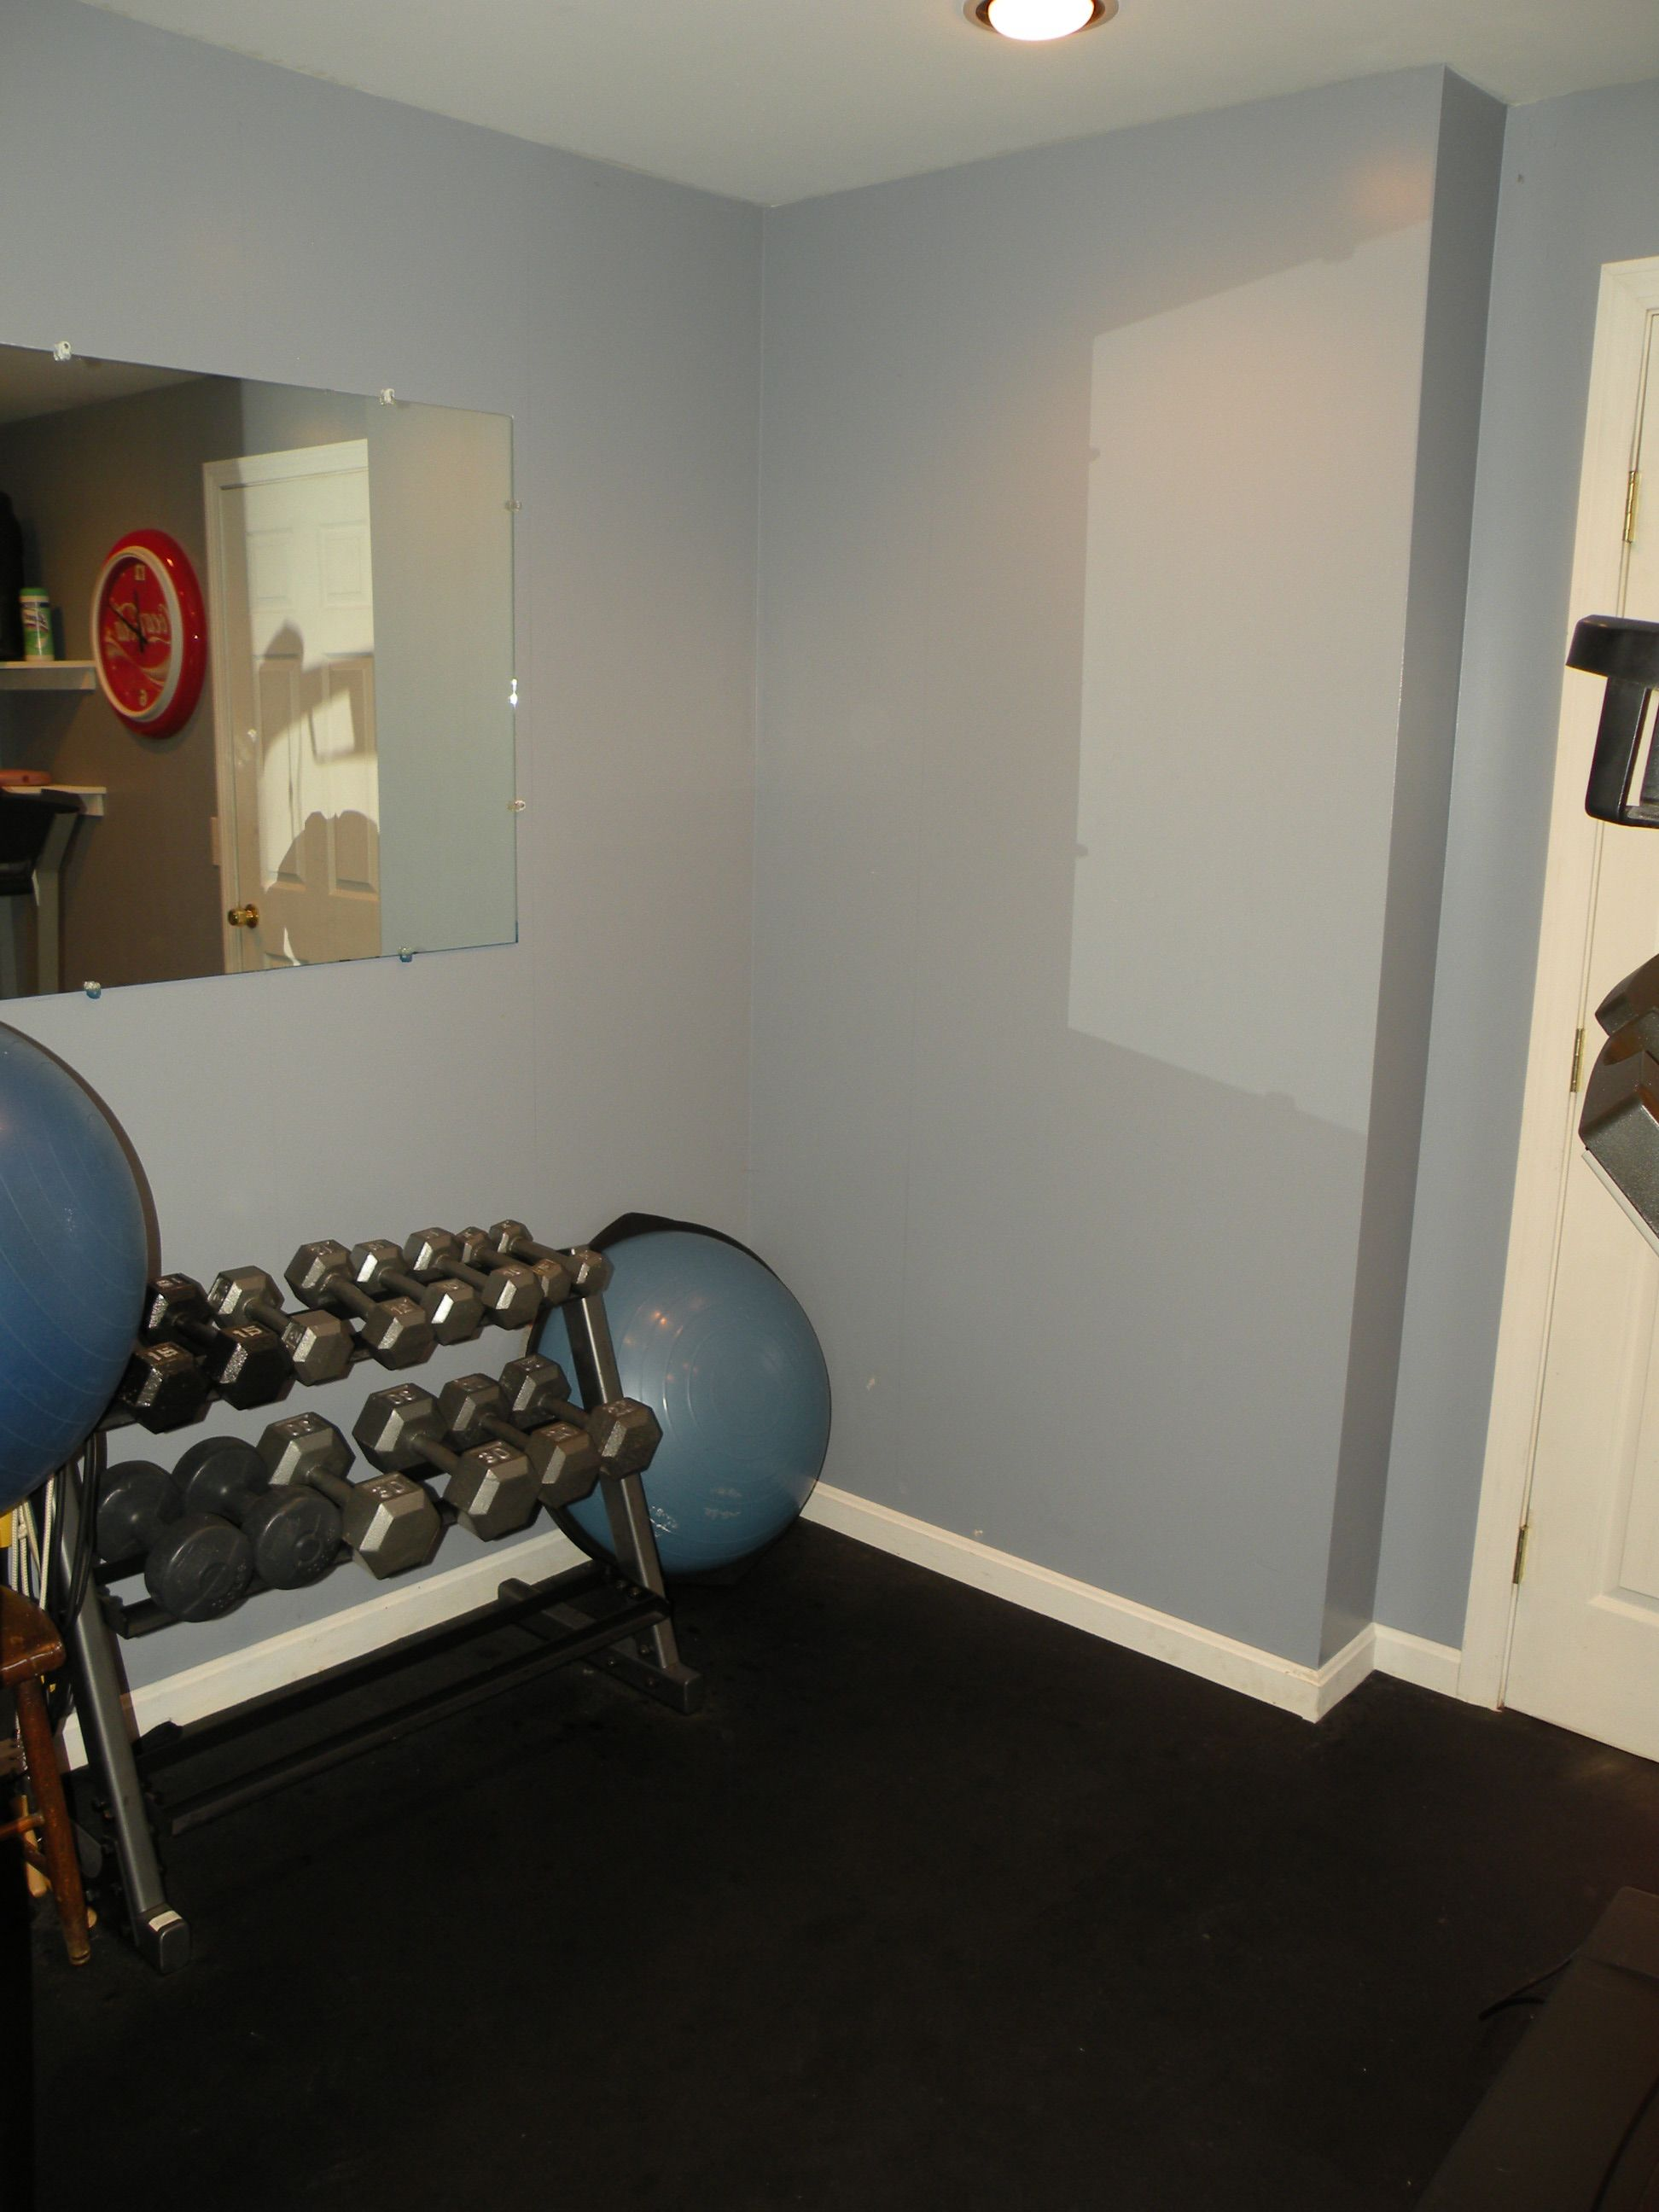 Workout room grey wall ball weights mirror white trim